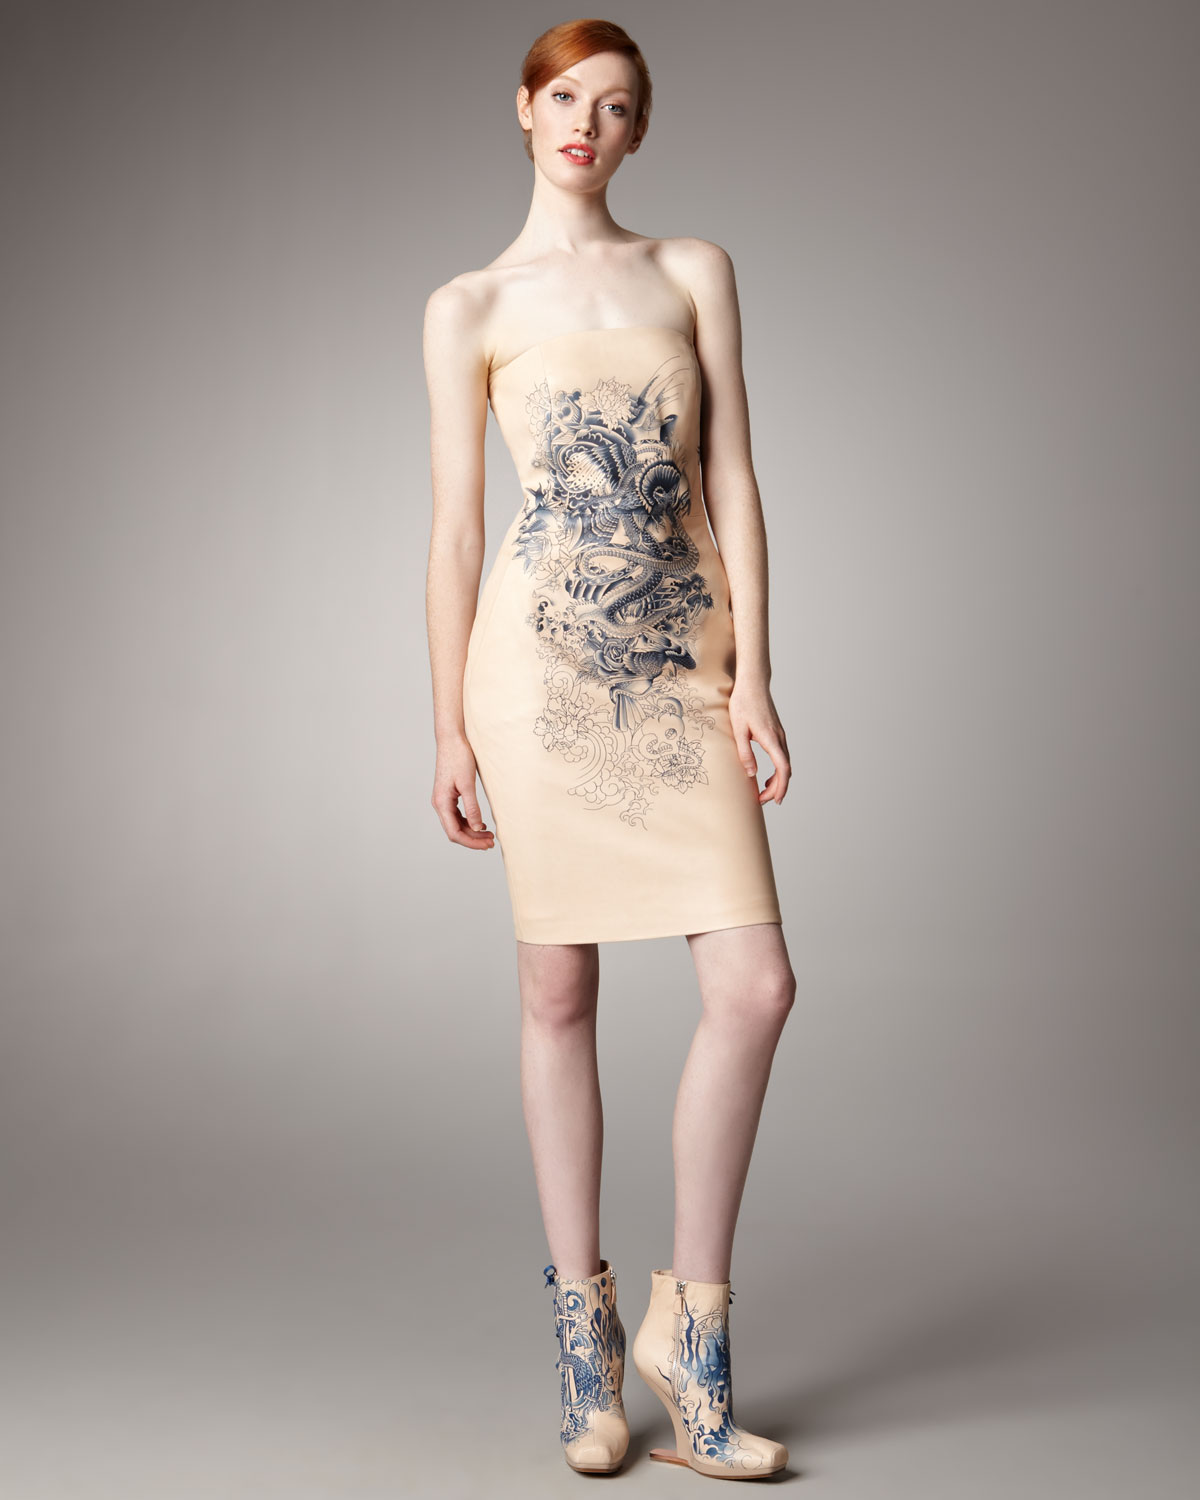 Lyst - Jean Paul Gaultier Tattoo-Print Leather Dress In Natural-1694